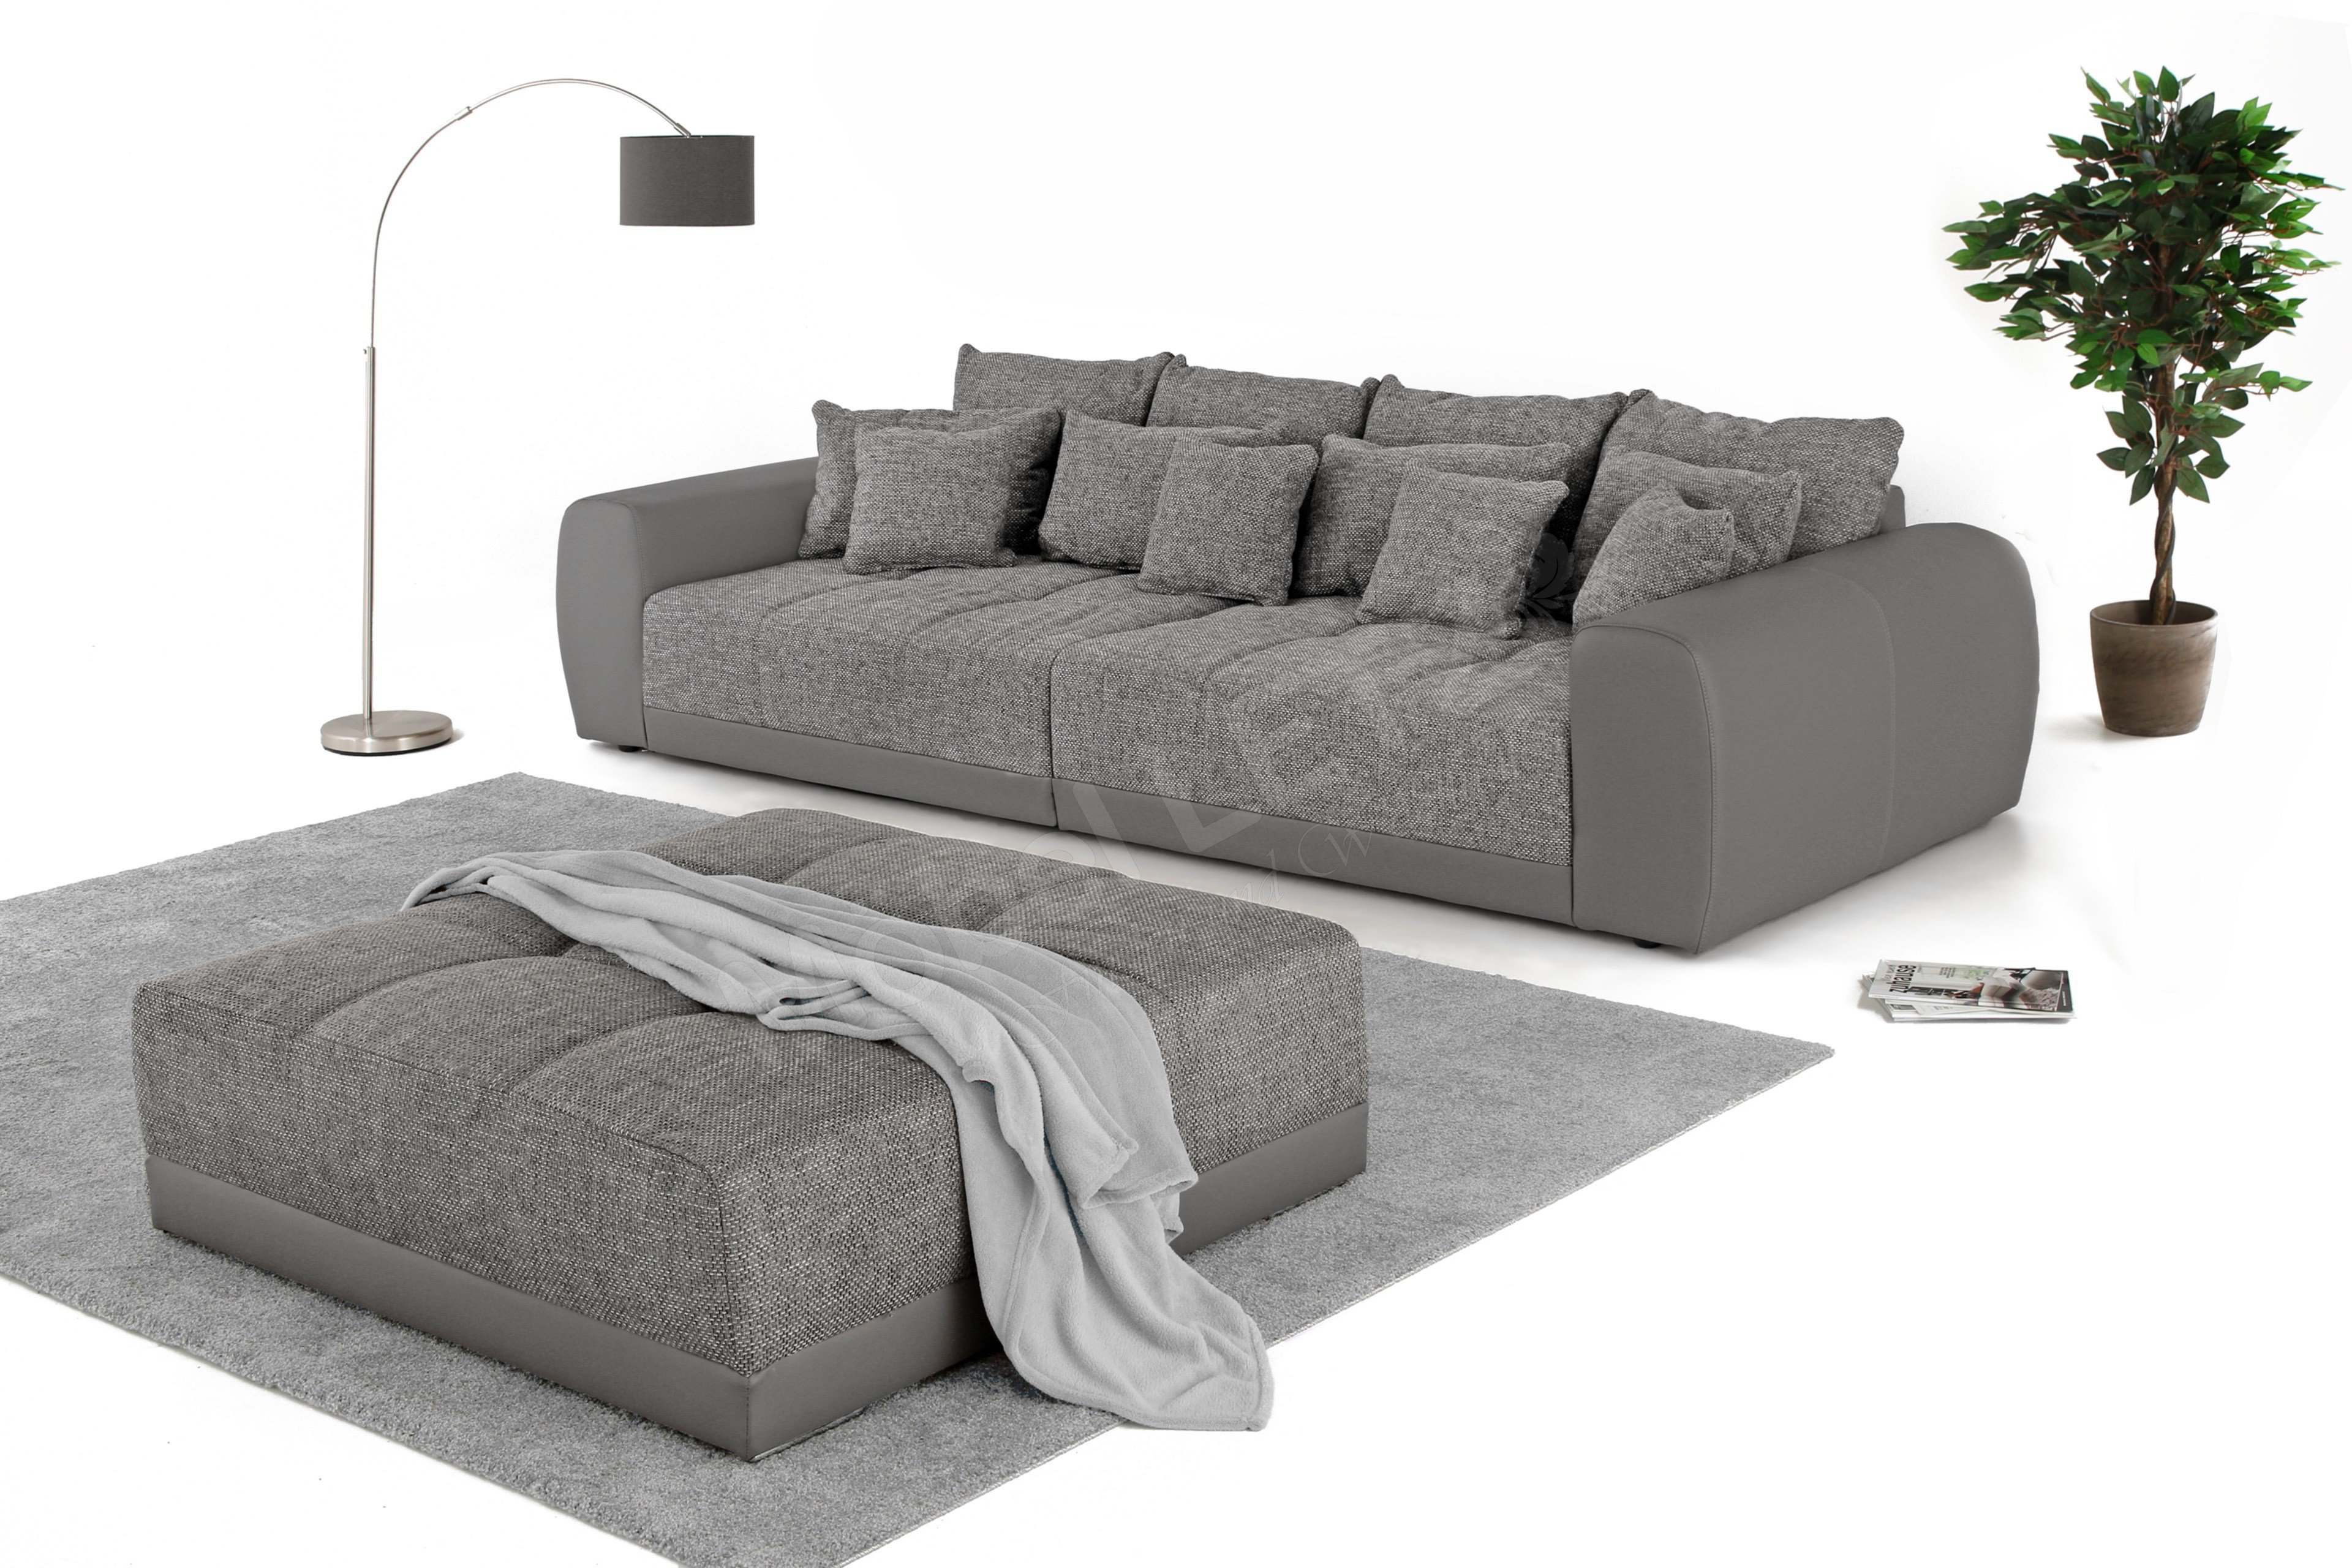 jockenh fer big sofa samy in grau m bel letz ihr online shop. Black Bedroom Furniture Sets. Home Design Ideas